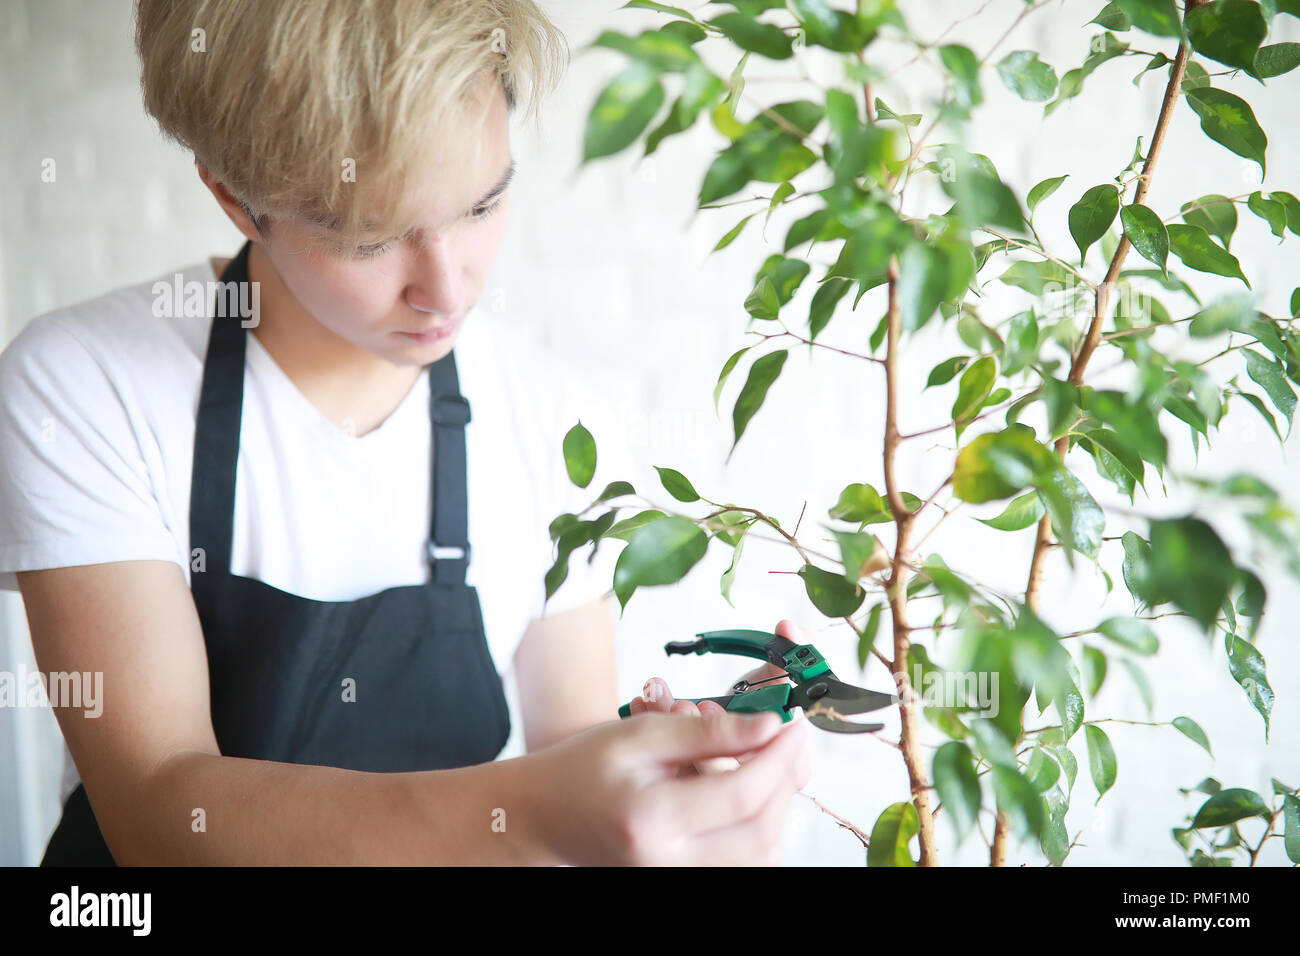 Young Asian boy takes care of indoor plants - Stock Image